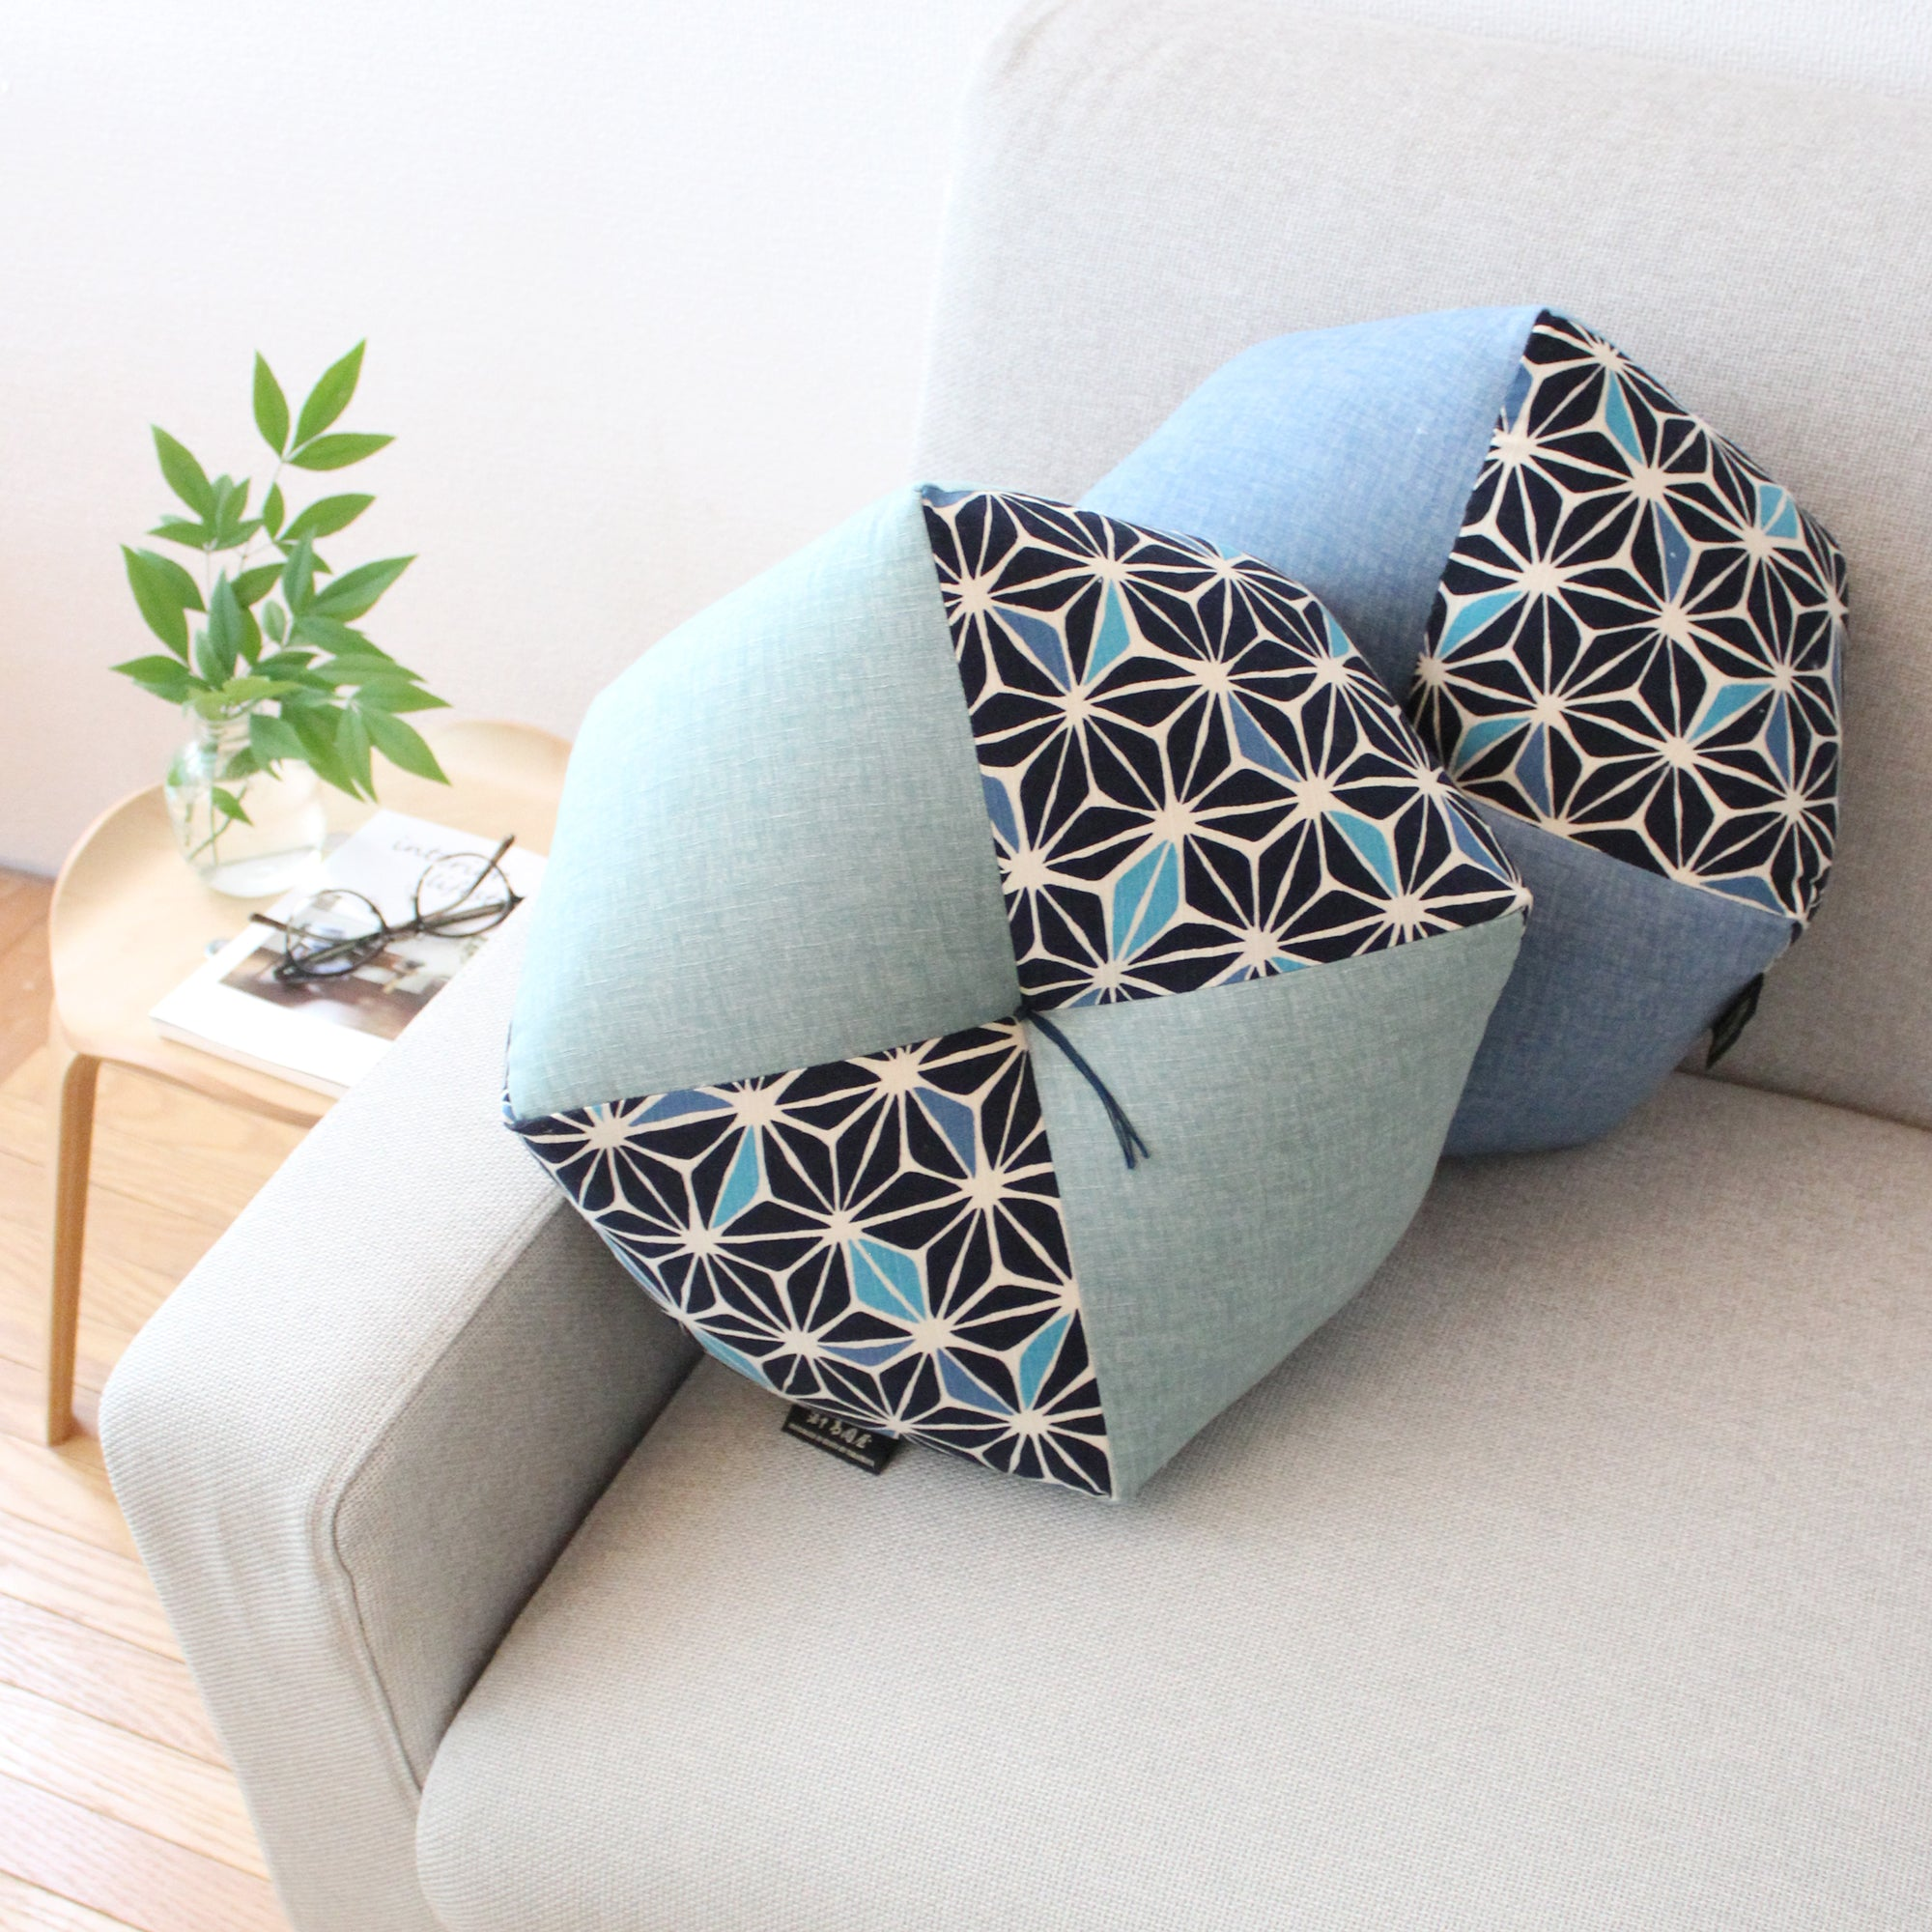 Ojami Cushion | Cotton | Asanoha (Traditinal Japanese Pattern) | Online Store Limited - Takaokaya